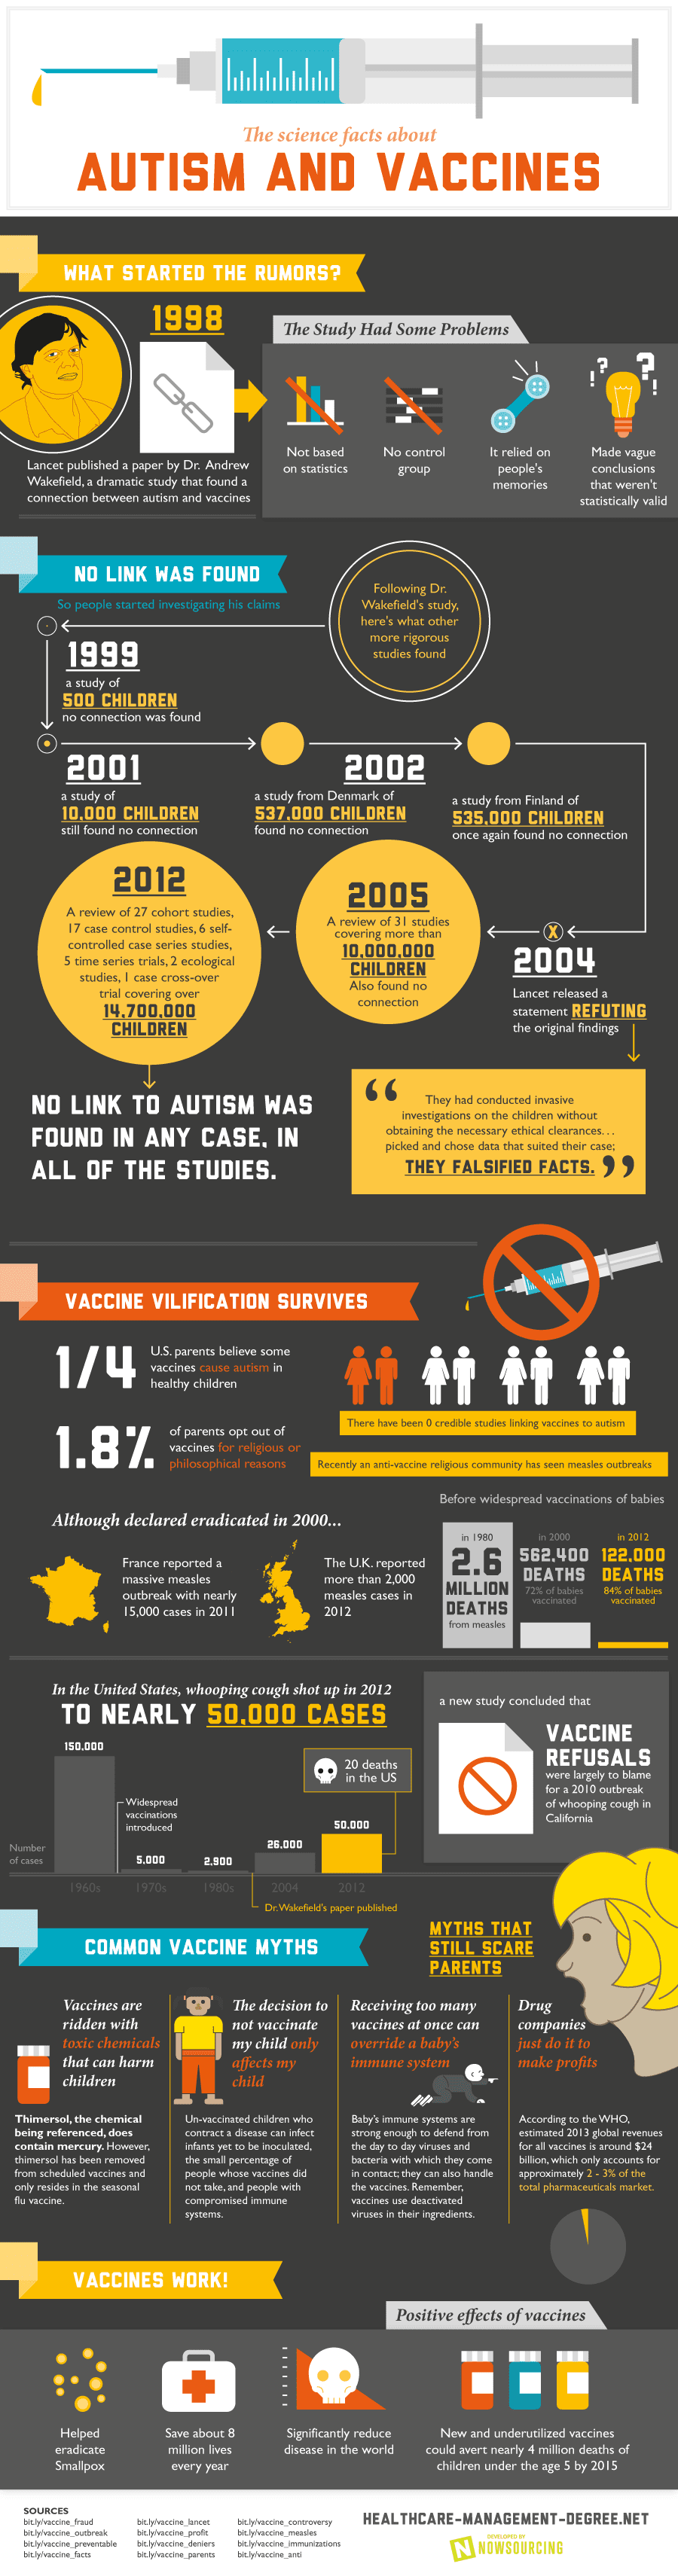 Infographic: The Science Facts about Autism and Vaccines #infographic